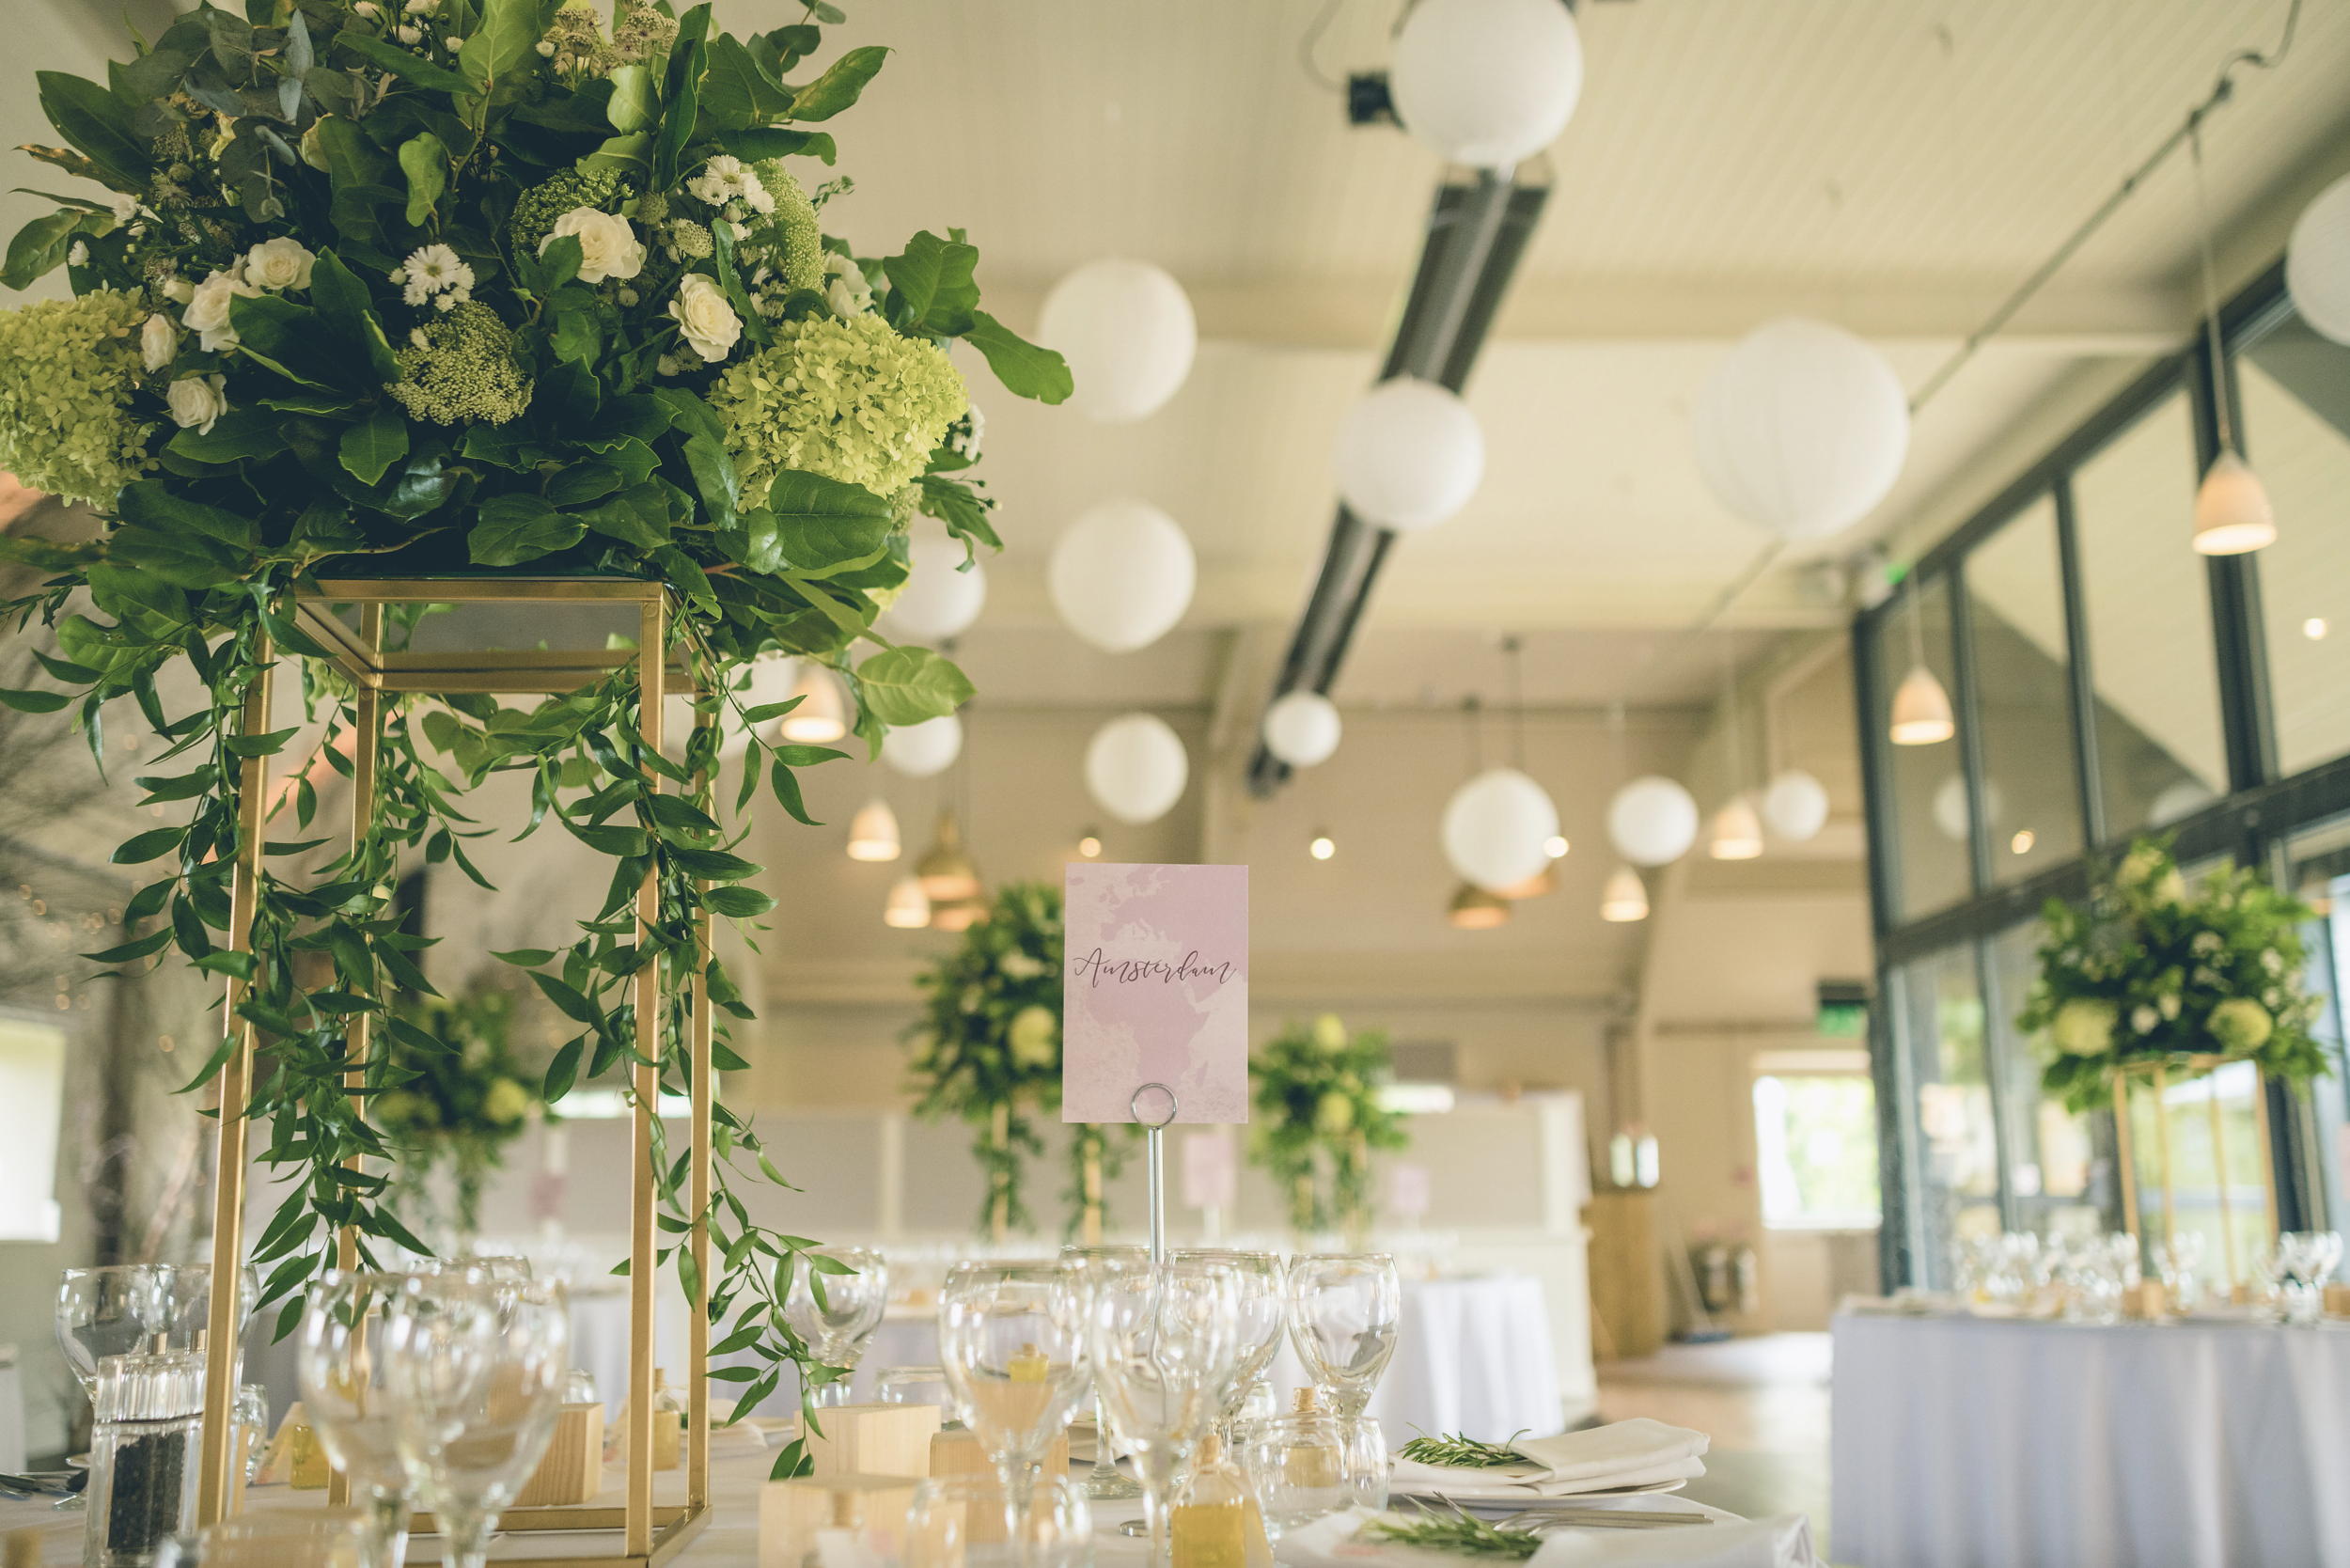 Lapstone Barn Wedding Venue, Travel inspired Table Name